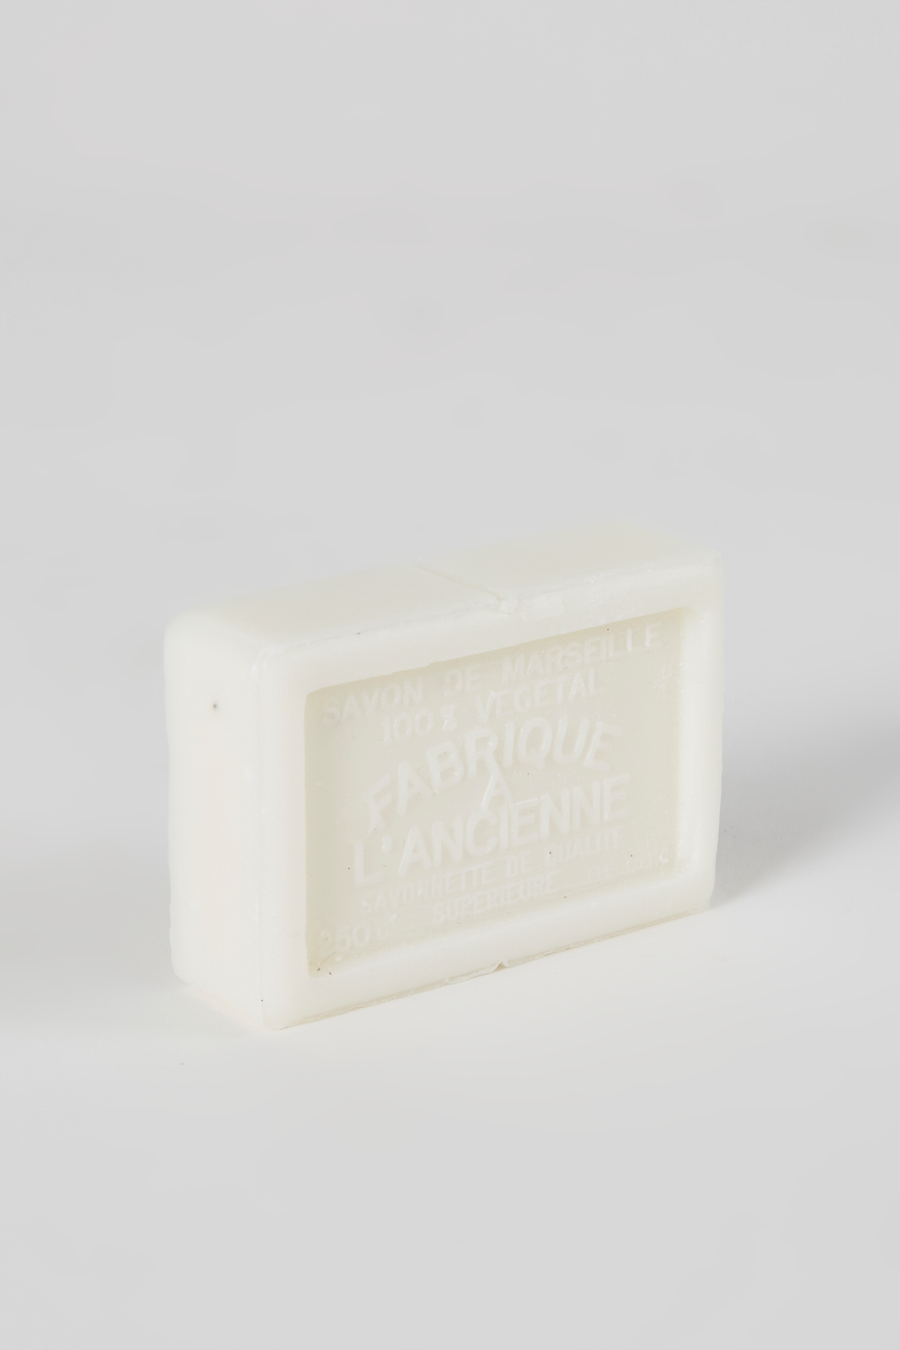 Lily Fabrique Soap